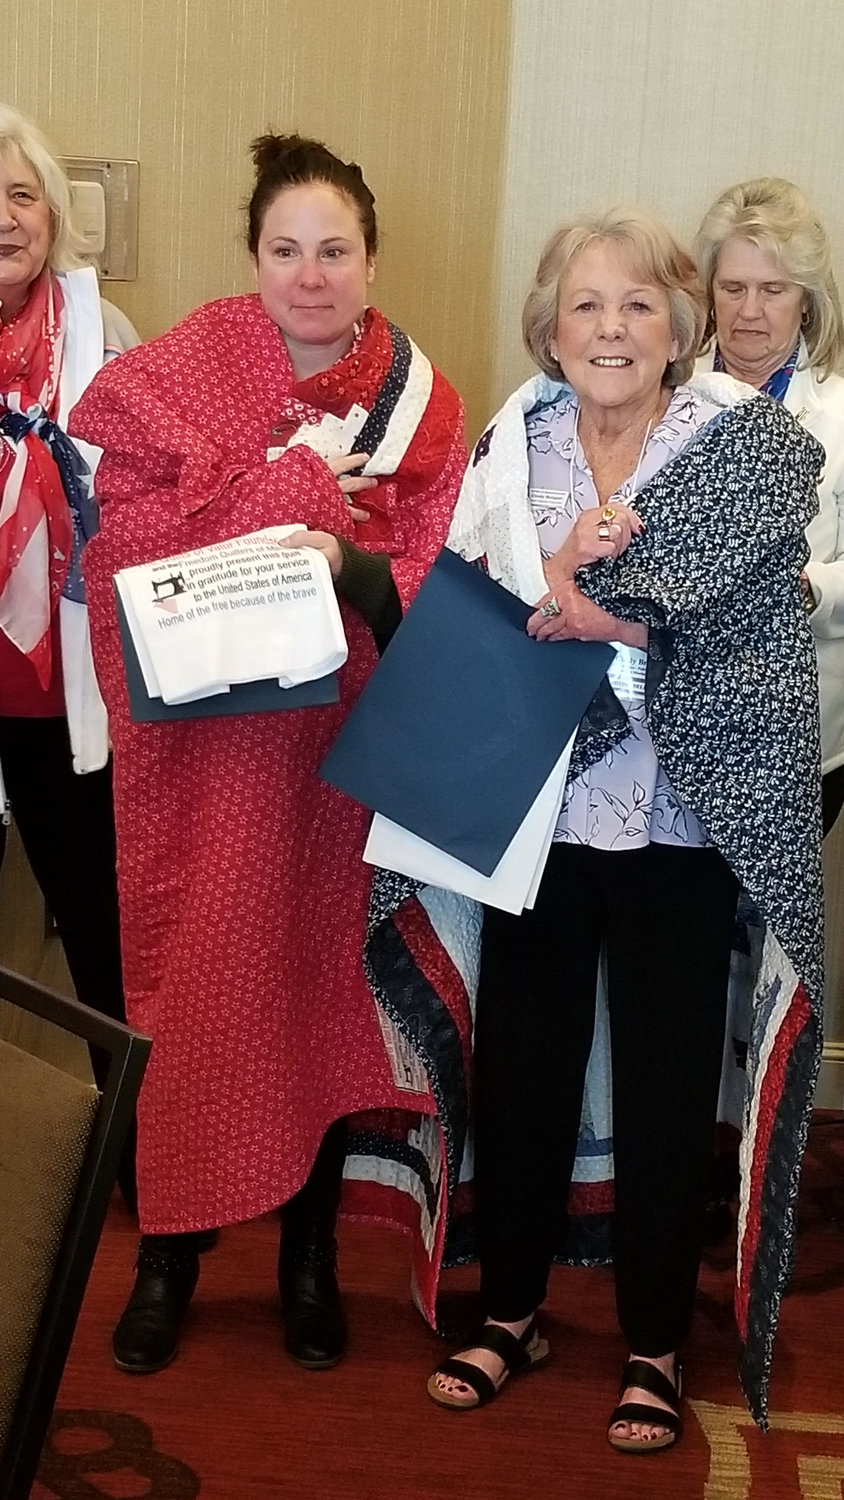 Maryellen Founds and Cindy Brogan Quilts of Valor